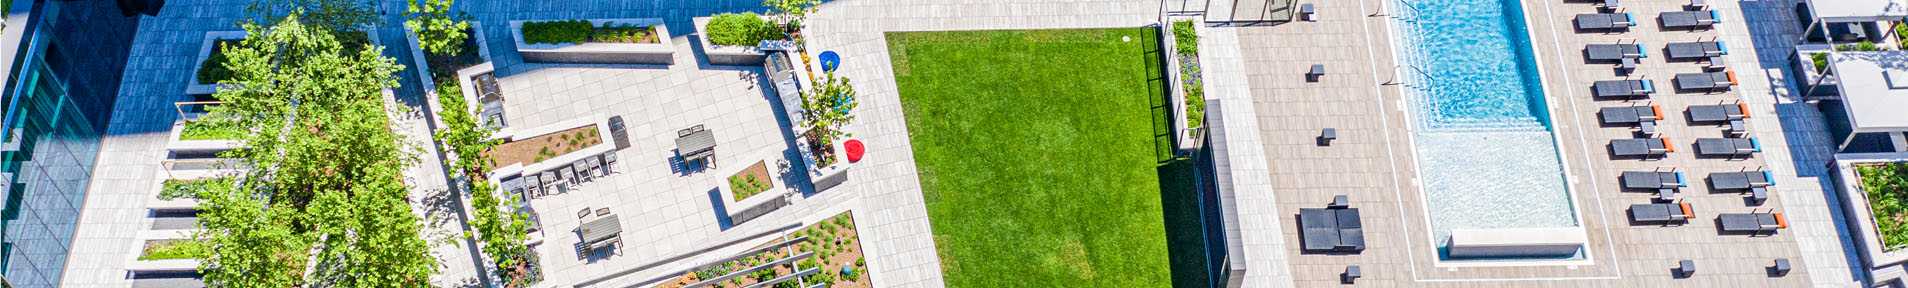 Roof-Pavers_Banner_01